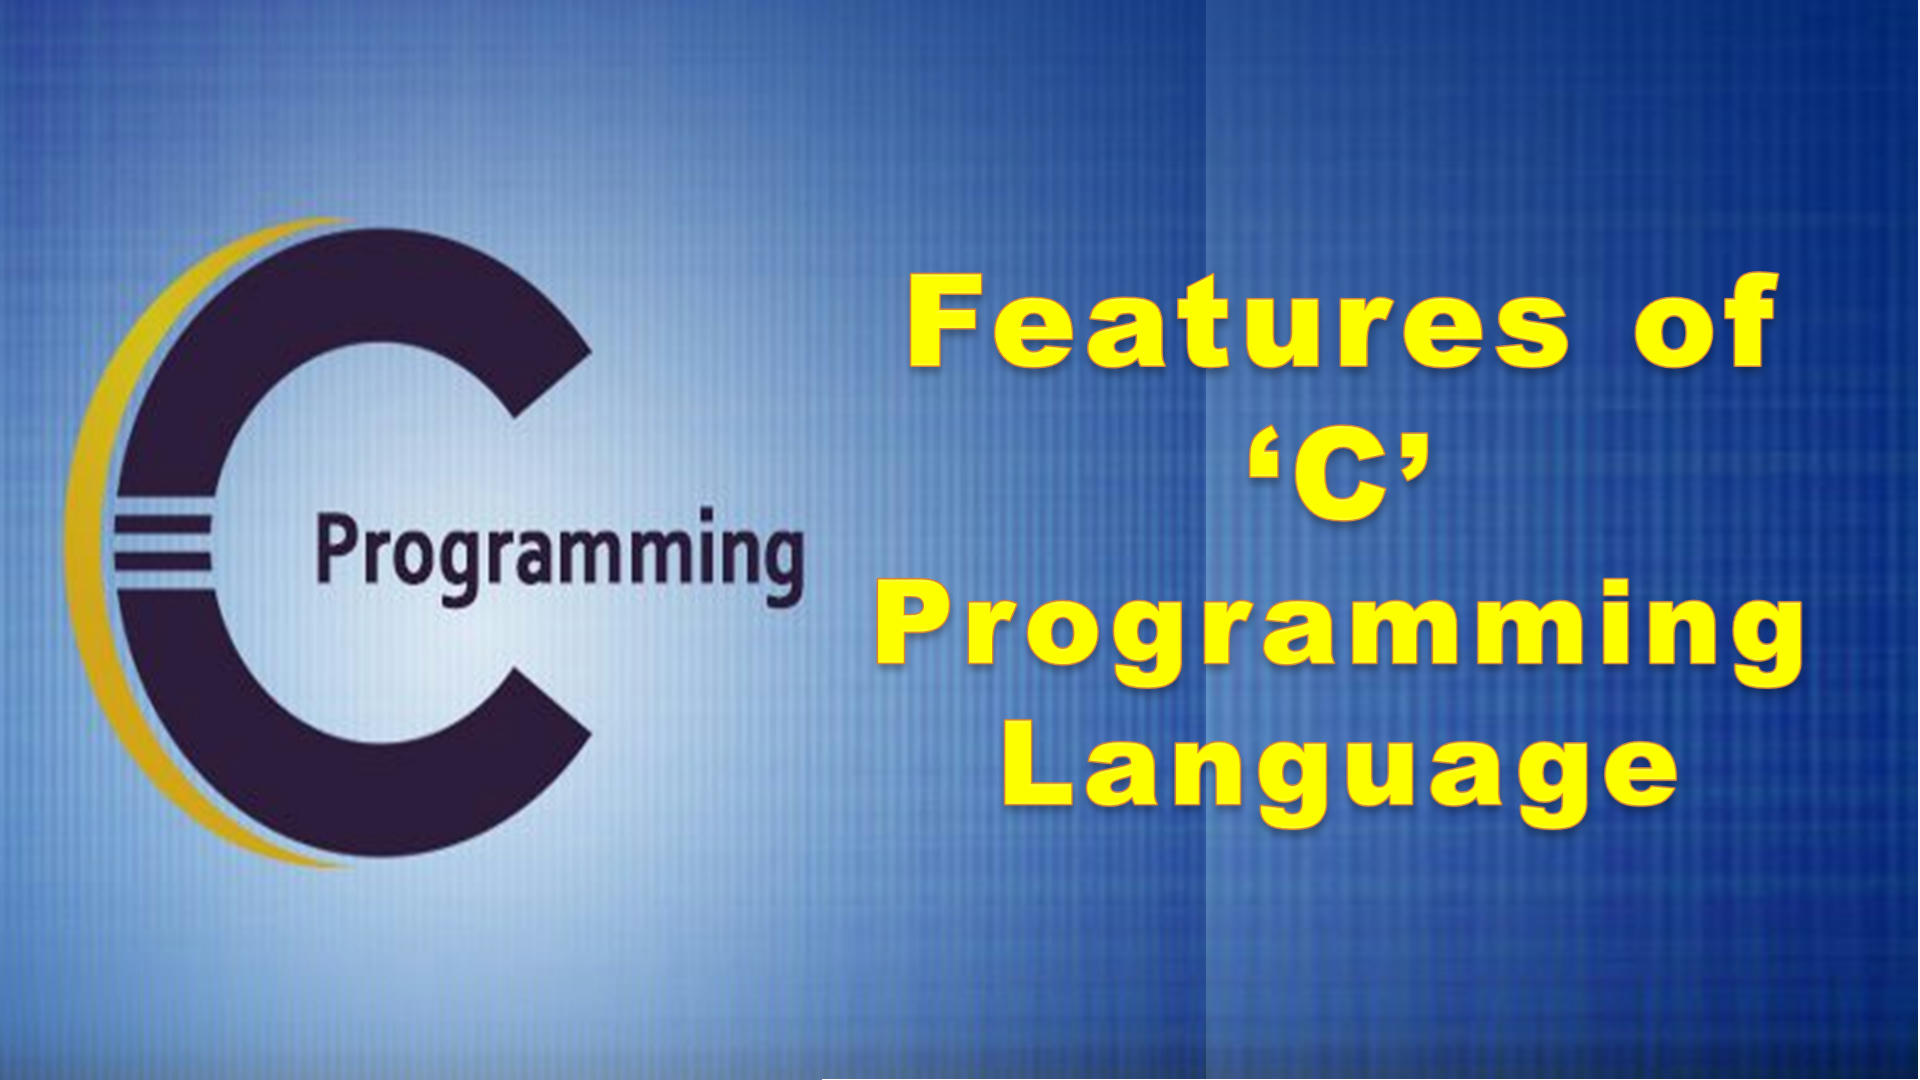 Features of C Programming Language